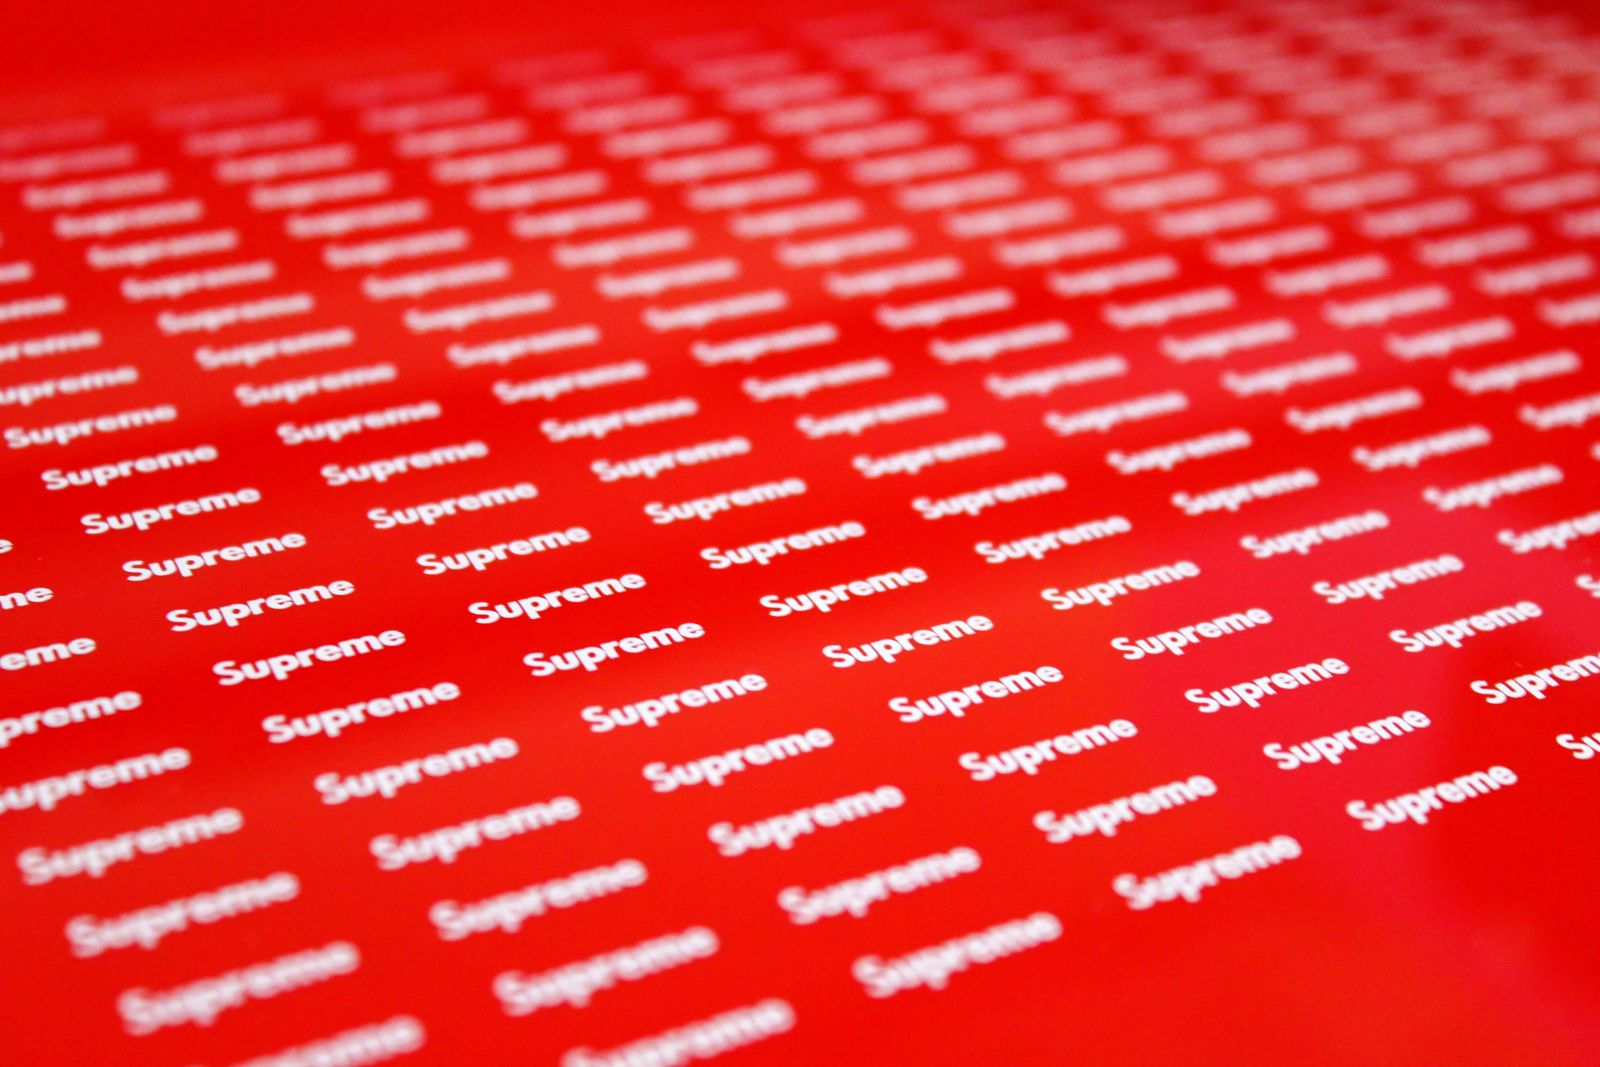 Supreme Opaque Vinyl Stickers